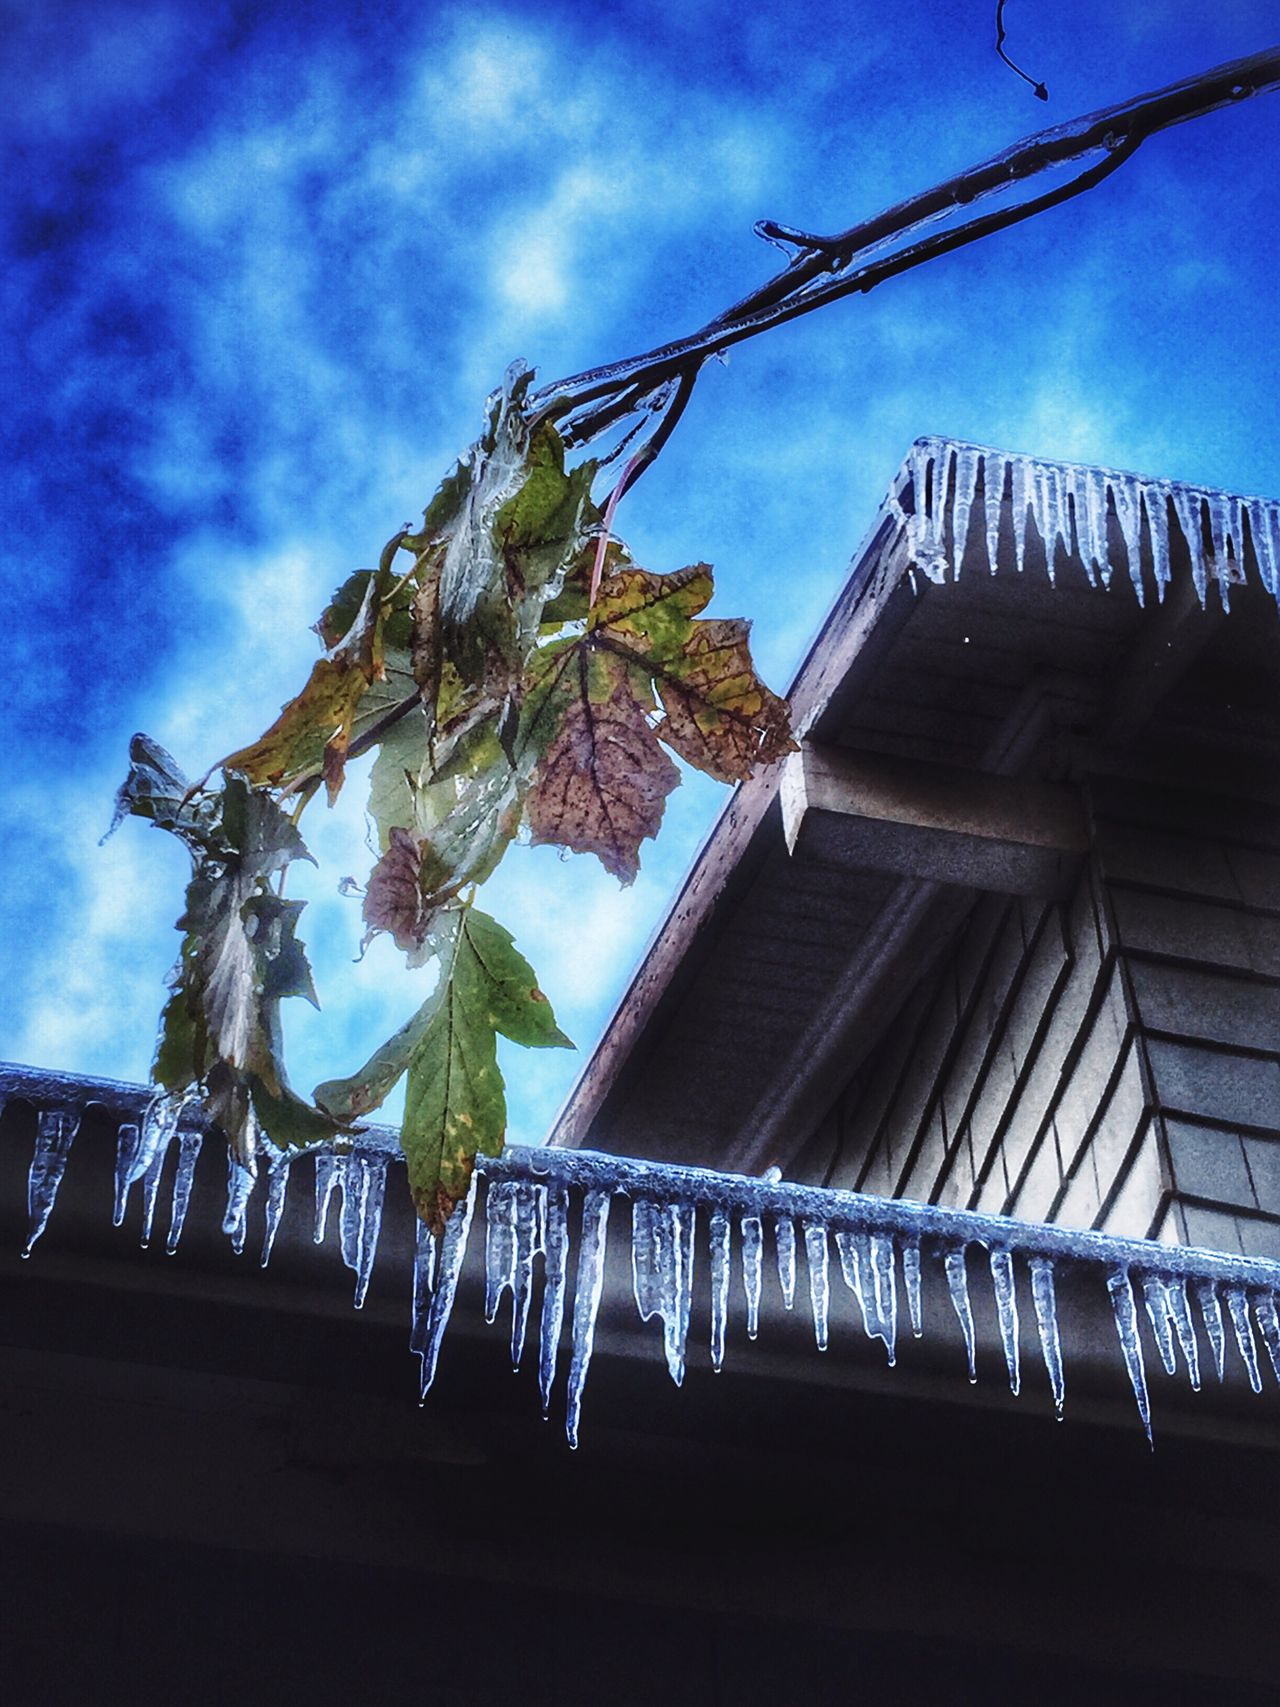 Icecycles Sky Building Exterior Built Structure Architecture Cloud - Sky Outdoors HDR Leaves Still Hanging On Weathered Views Natural Condition Beauty In Ordinary Things View Shapes In Nature  Winter Cold Frozen Cold Temperature Ice Weather